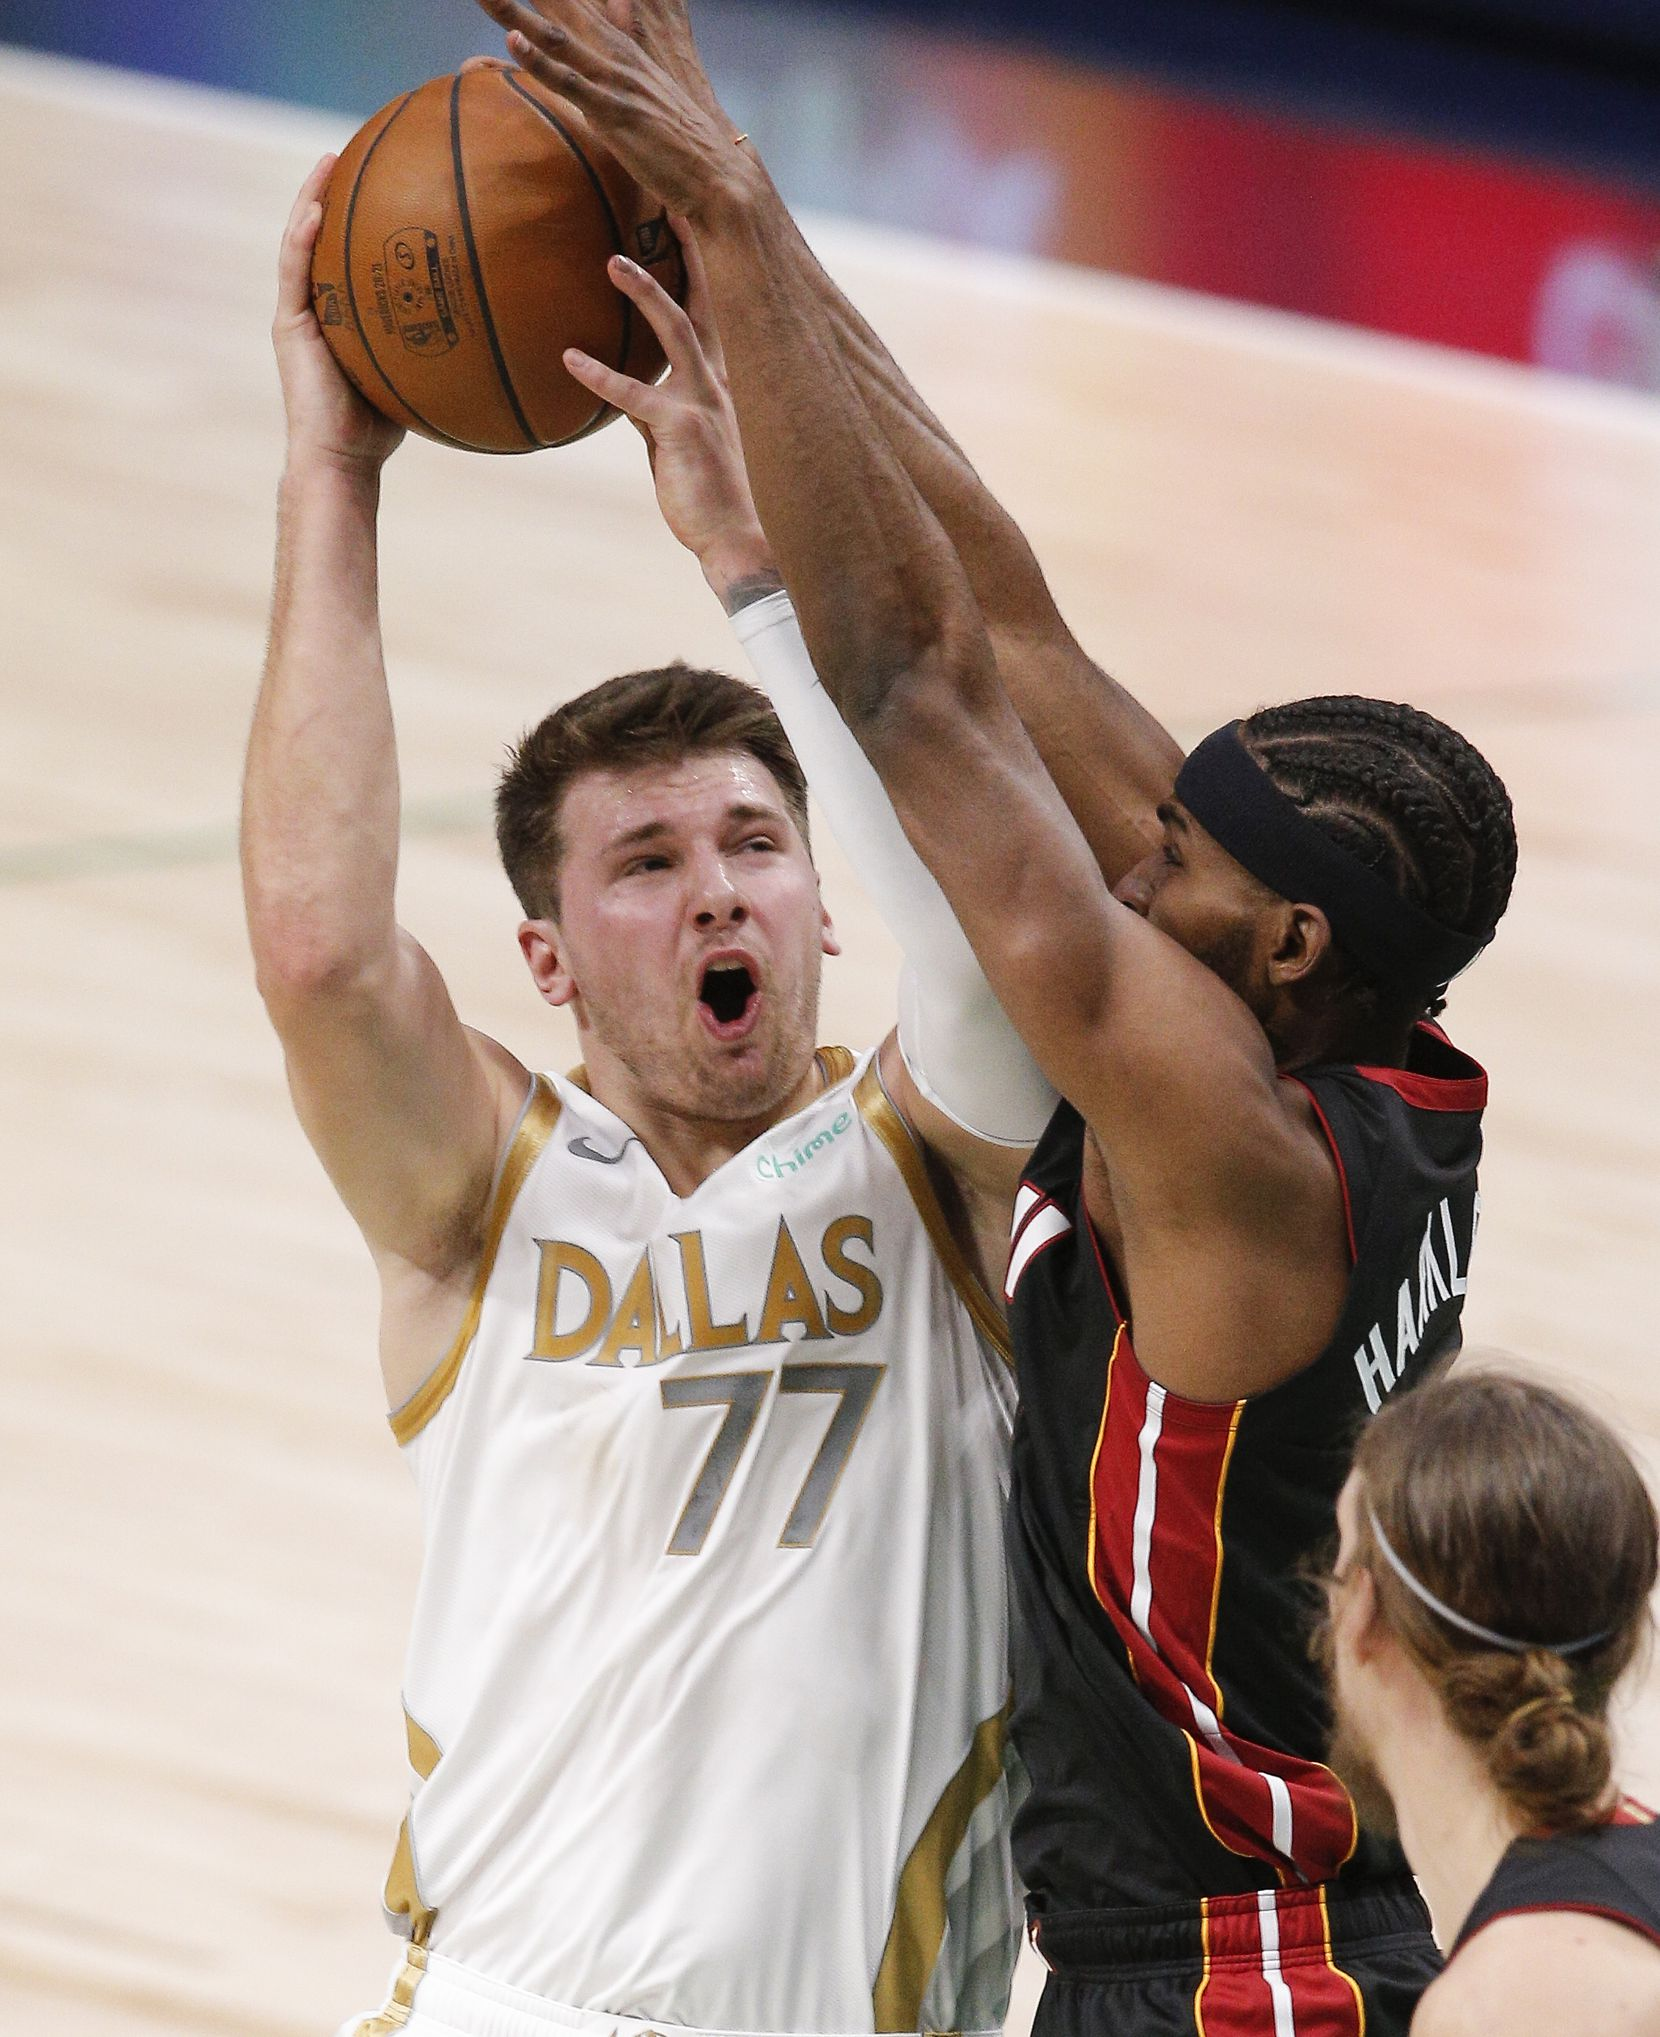 Dallas Mavericks guard Luka Doncic (77) attempts a shot as Miami Heat forward Maurice Harkless (8) defends during the first half of an NBA basketball game, Friday, January 1, 2021. (Brandon Wade/Special Contributor)